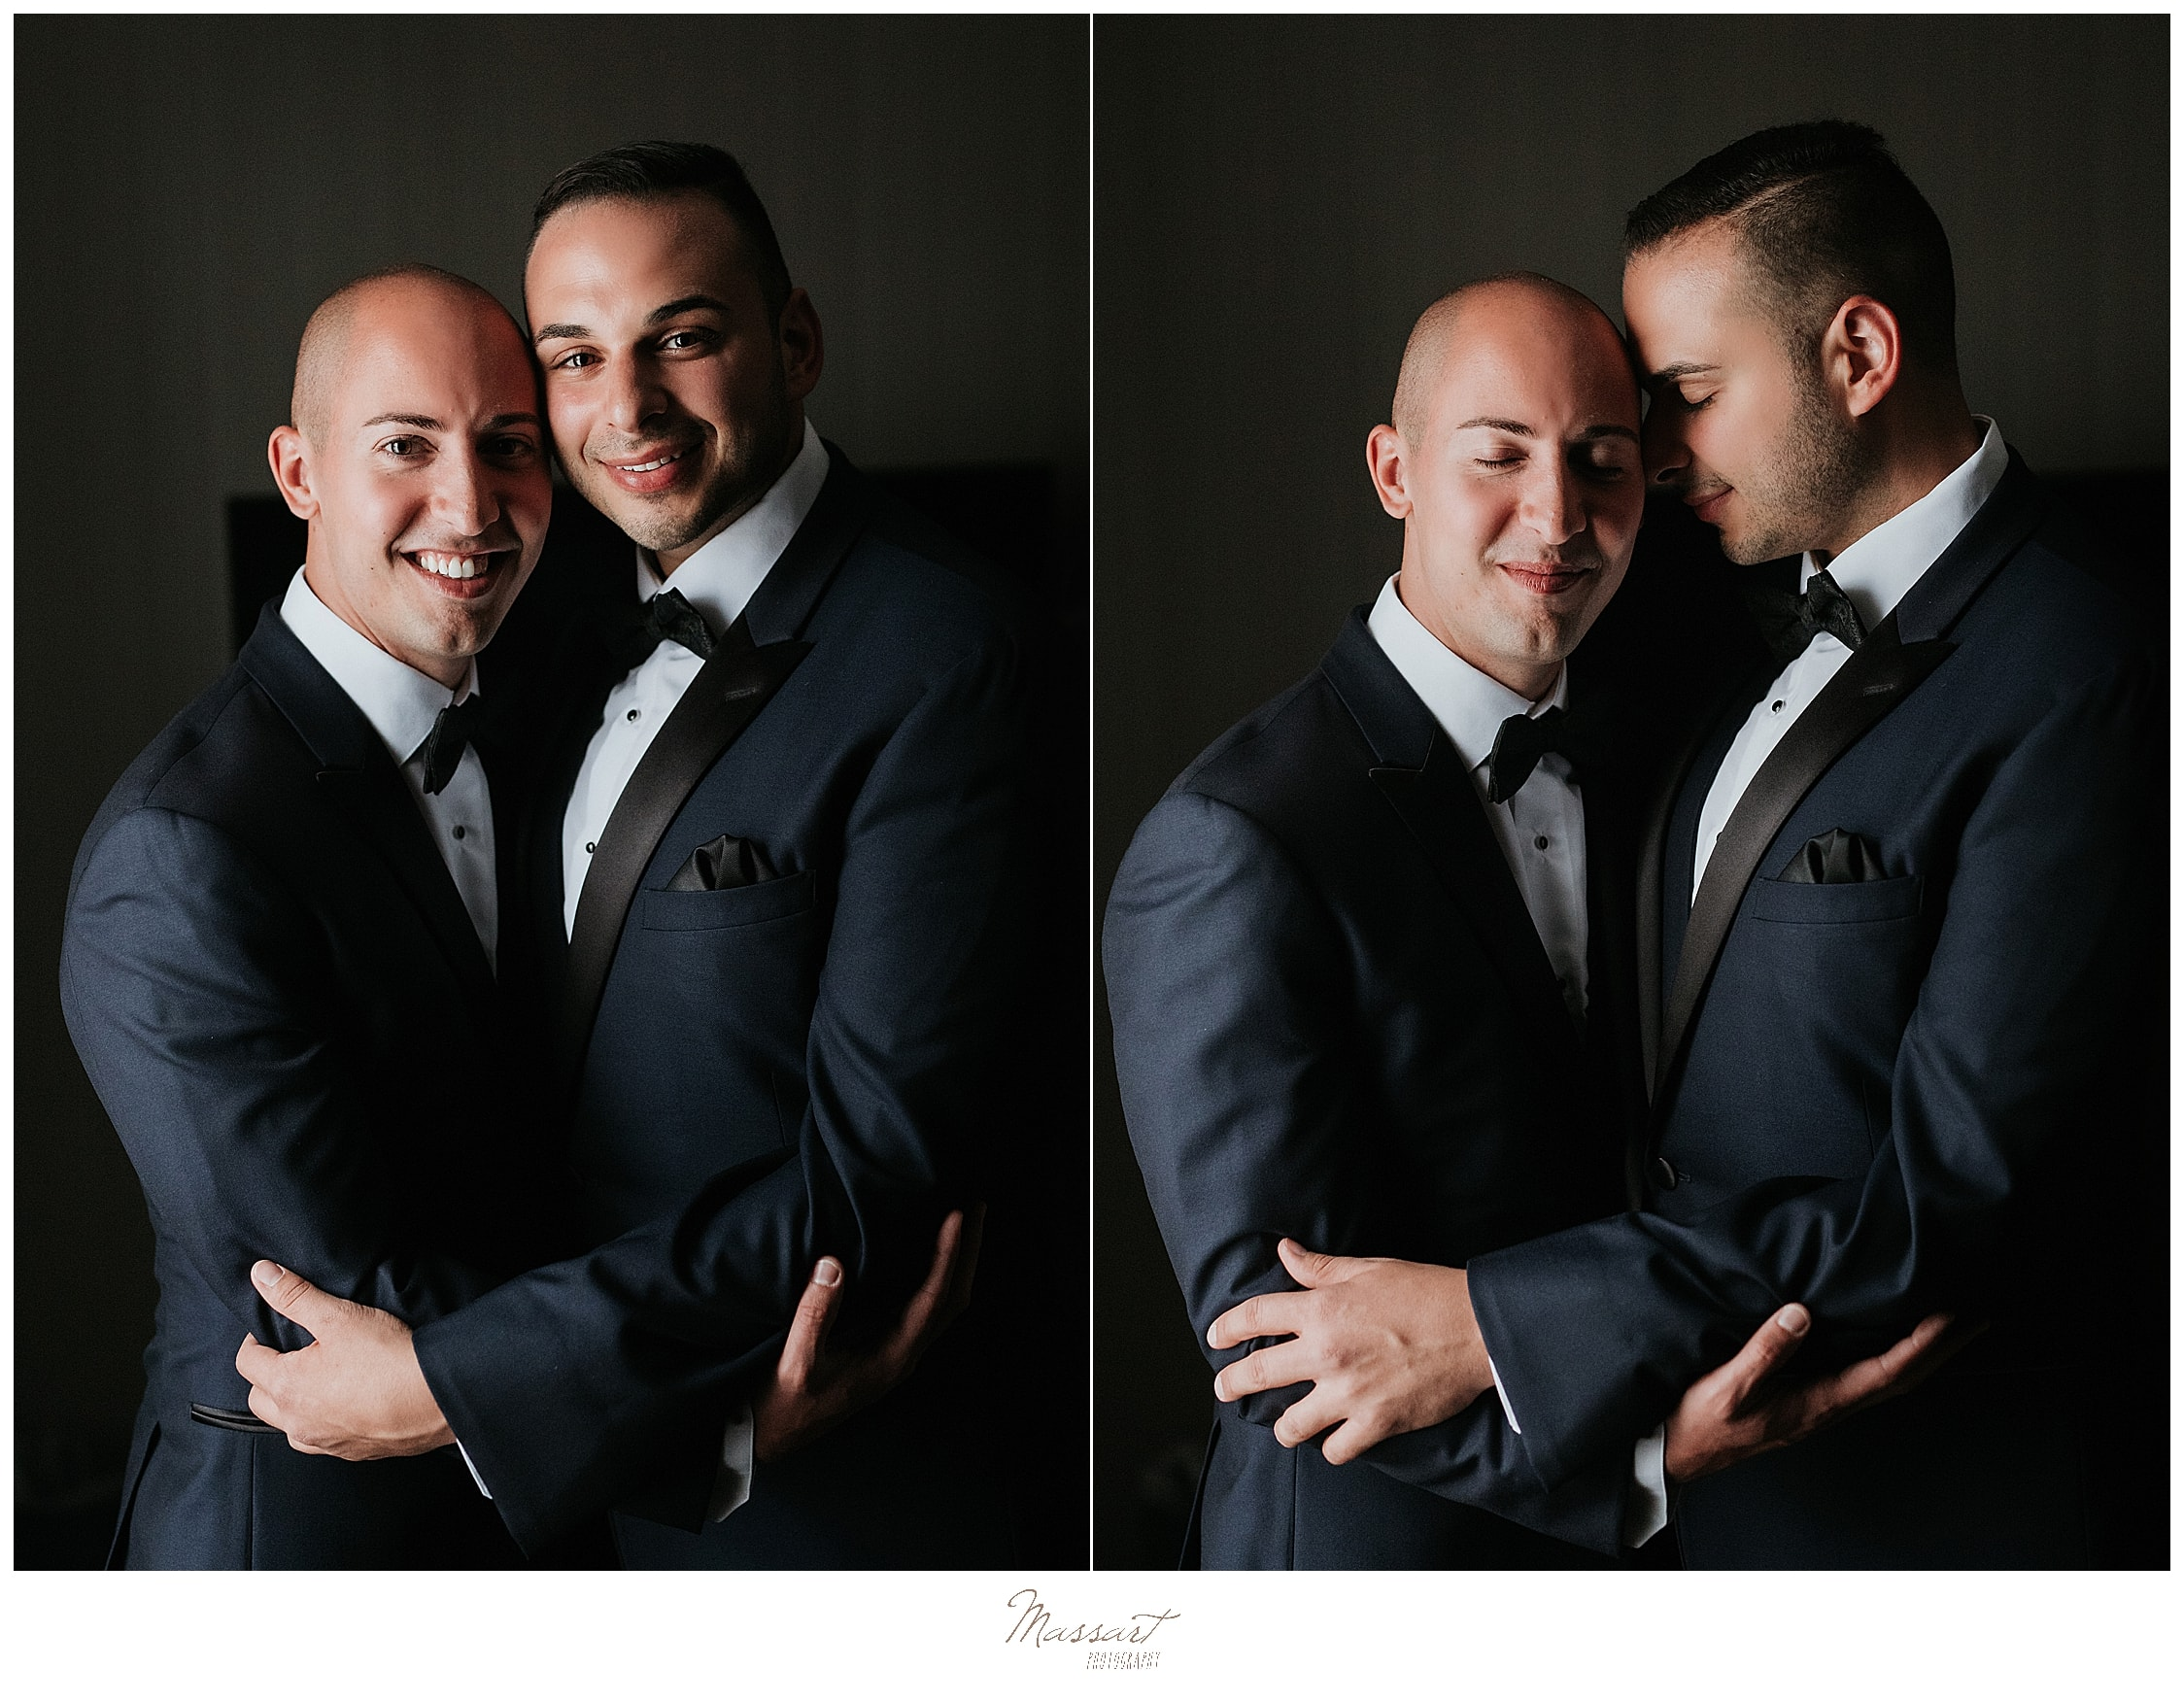 portraits of grooms at Palace Theater wedding day by wedding photographers Massart Photography